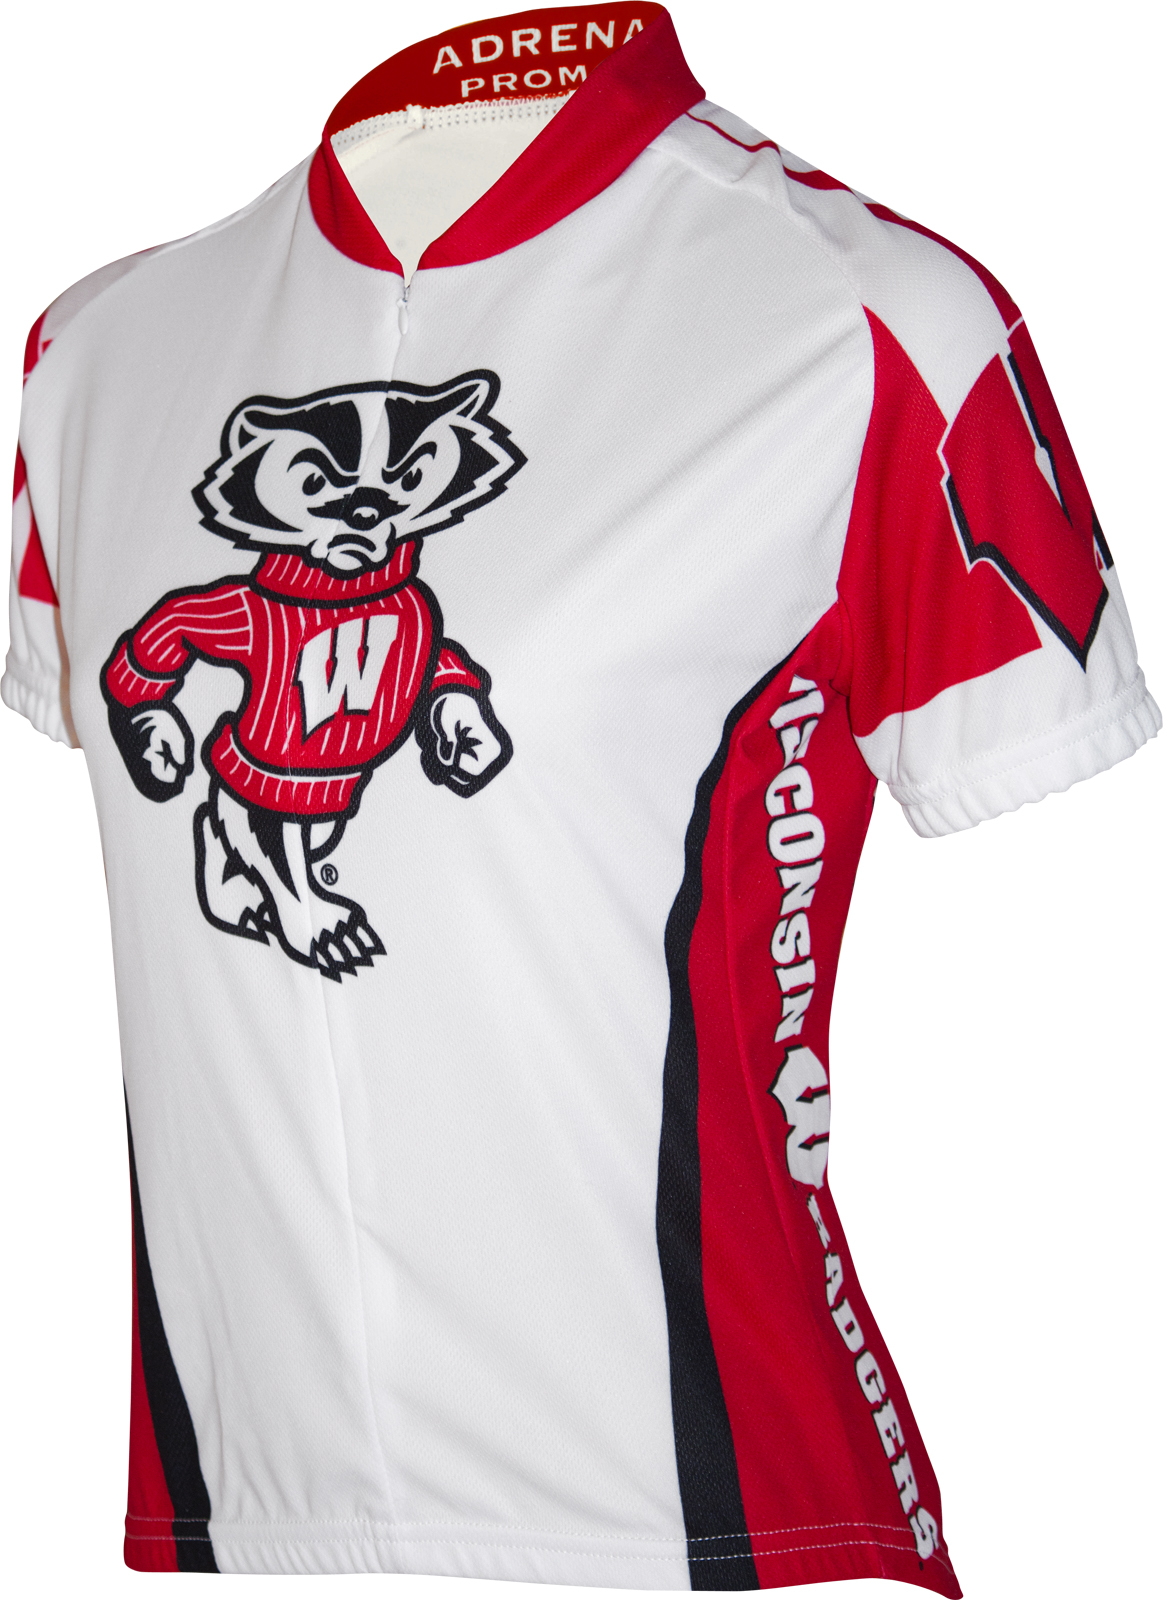 University of Wisconsin Badgers Women's Cycling Jersey